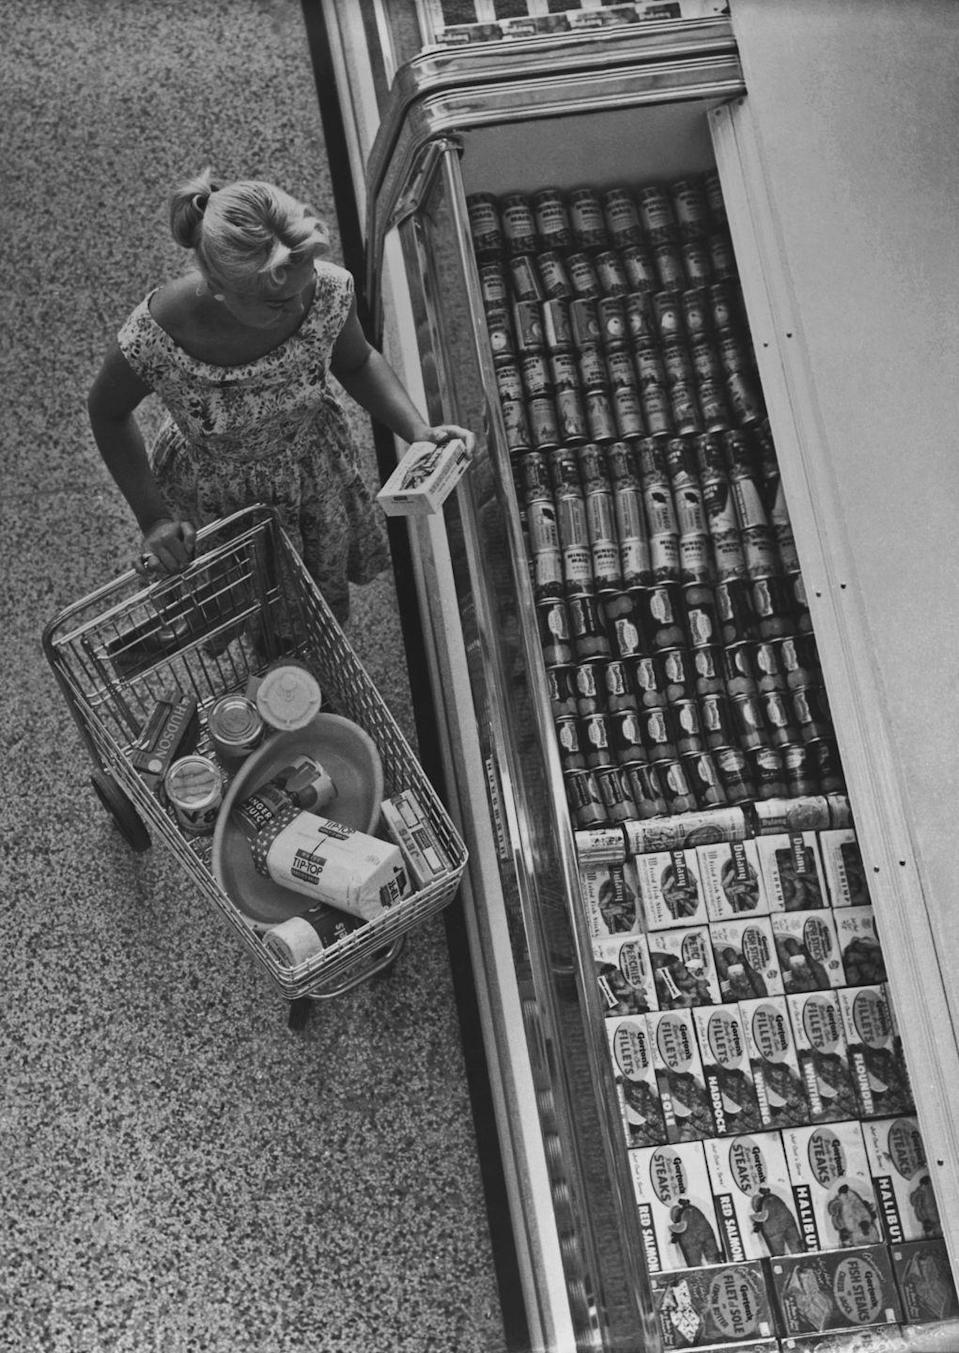 "<p>Until the rise of supermarkets, households got their milk <a href=""https://food52.com/blog/20229-milkmen-history"" rel=""nofollow noopener"" target=""_blank"" data-ylk=""slk:delivered by a milk man"" class=""link rapid-noclick-resp"">delivered by a milk man</a>. This model saw a decline when people started moving to more suburban neighborhoods, where driving was a part of their daily routine.</p>"